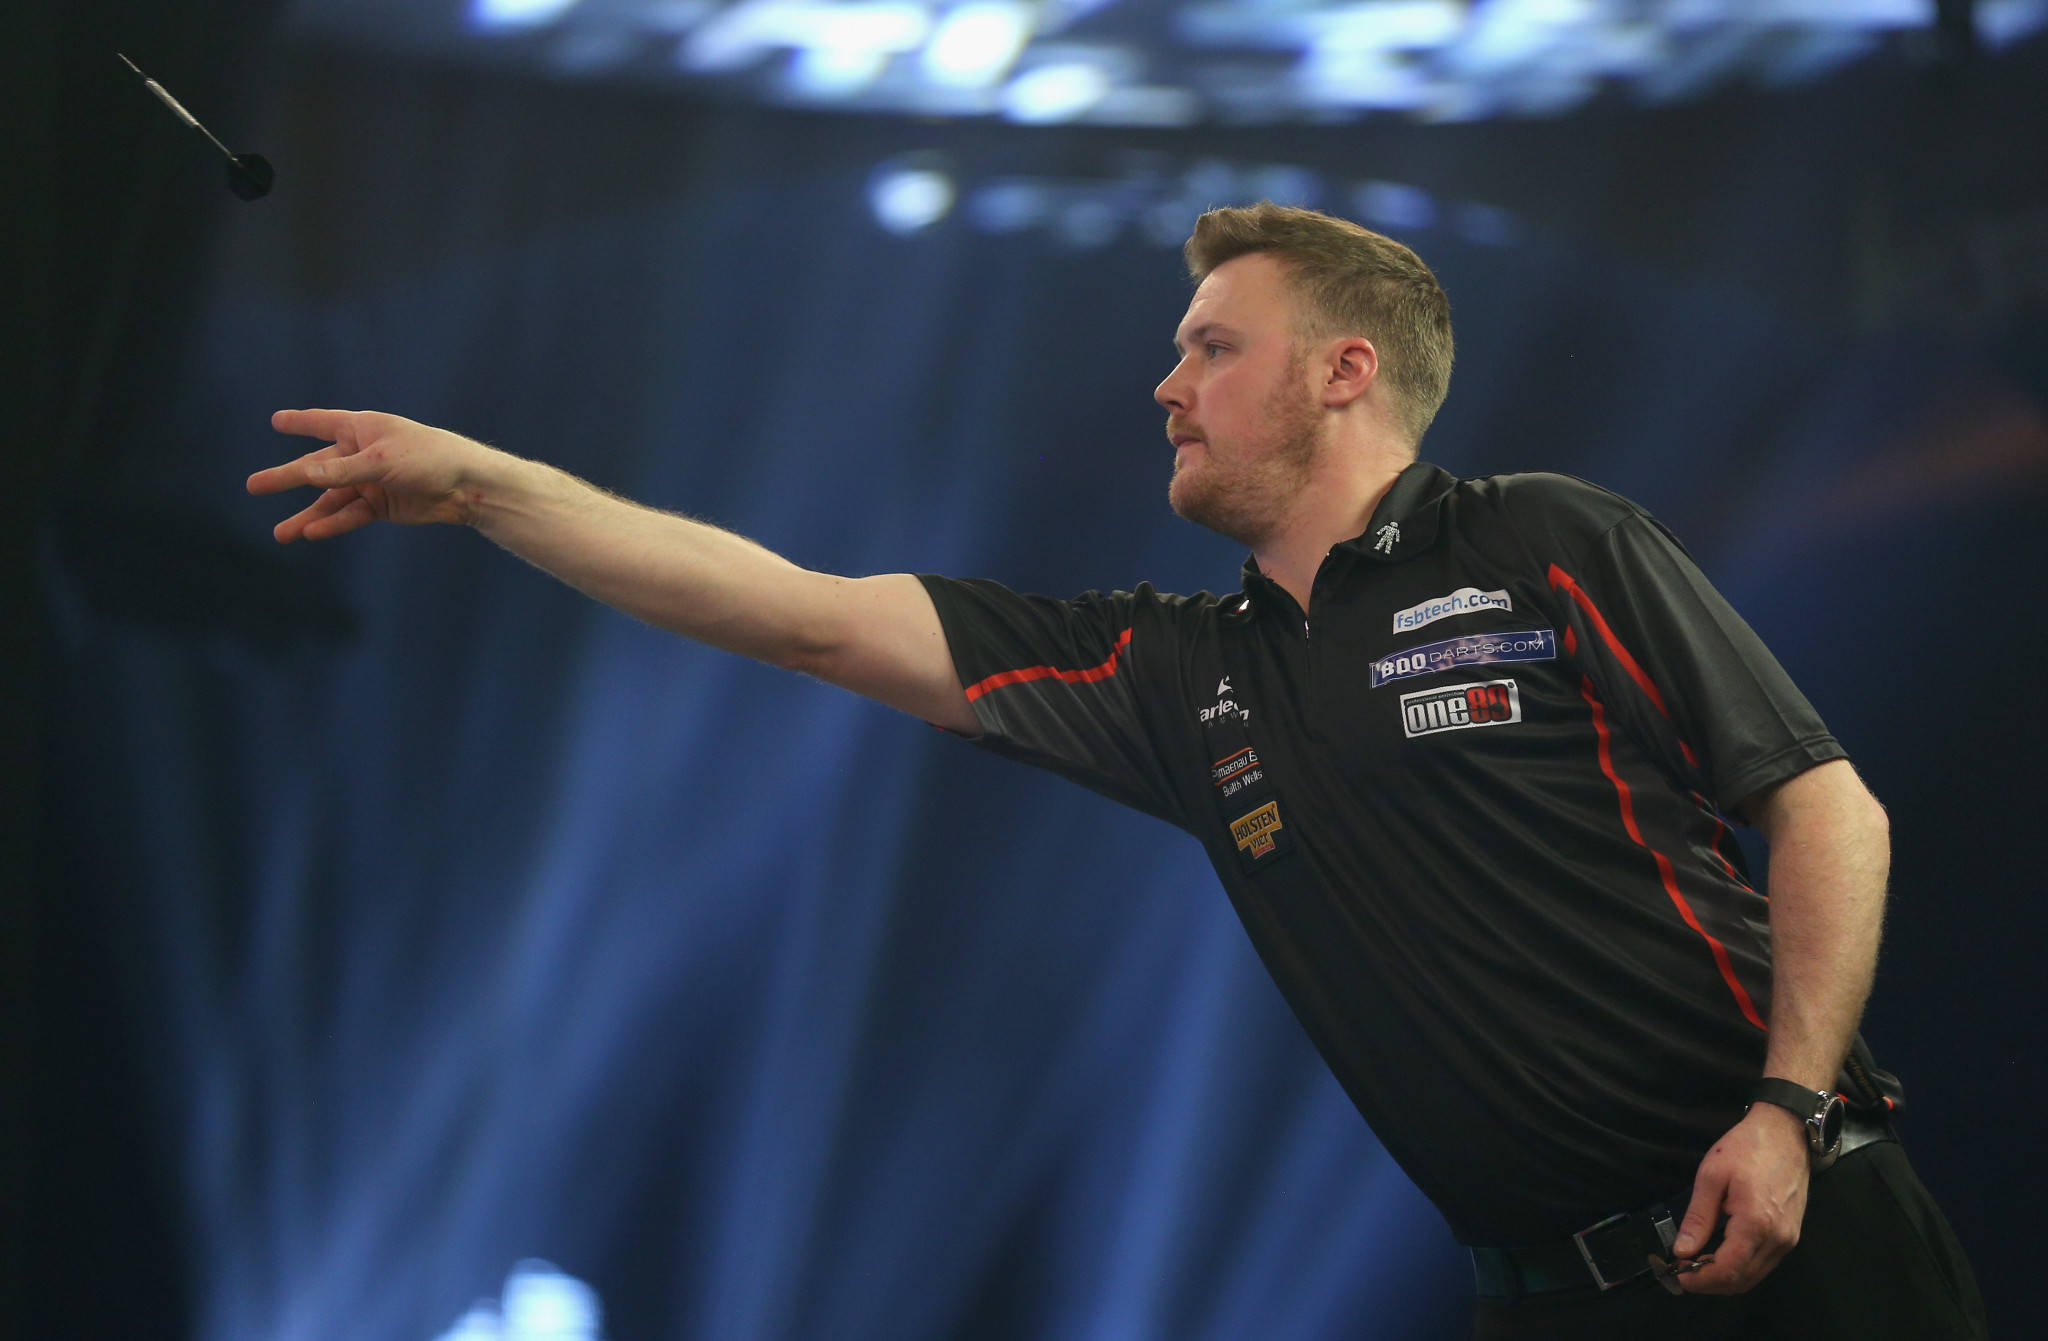 Welshman Jim Williams booked a quarter-final place at the British Darts Organisation World Championships for the first time ©Getty Images